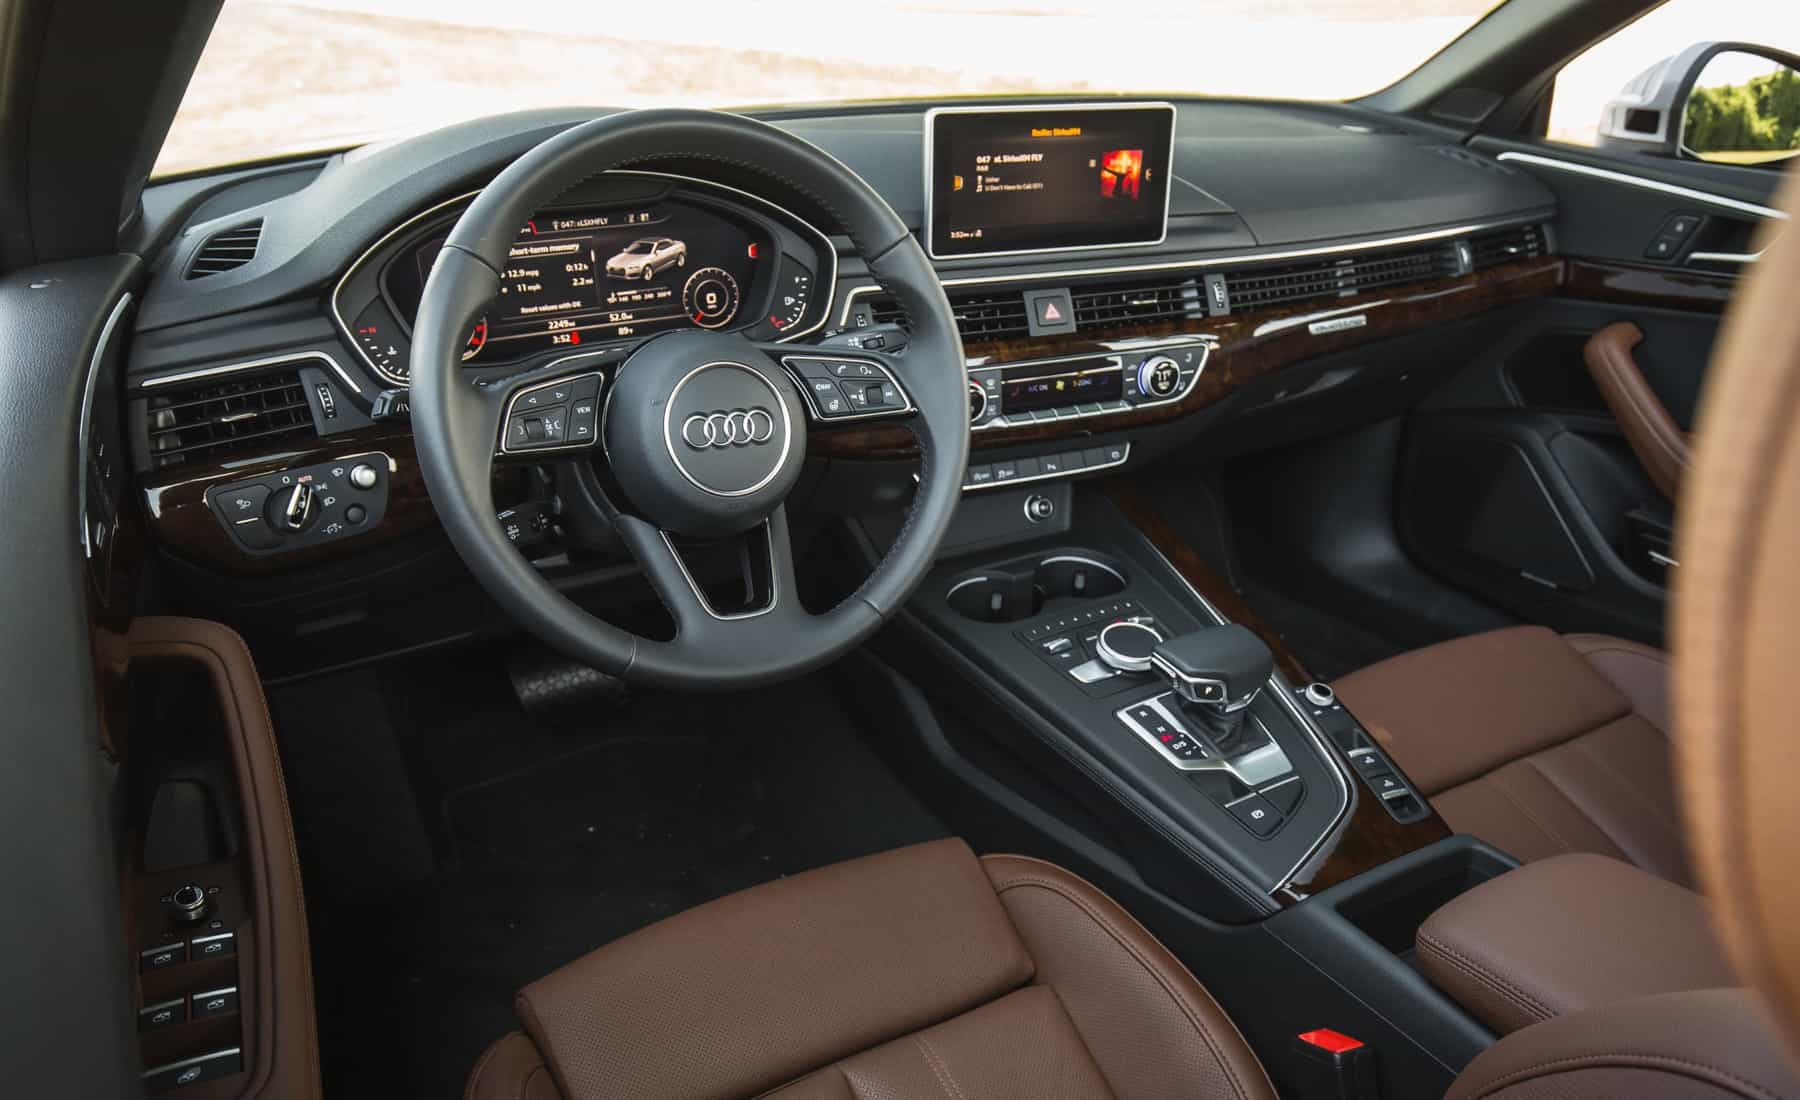 2018 Audi A5 Cabriolet Interior Driver Cockpit And Dashboard (View 25 of 45)